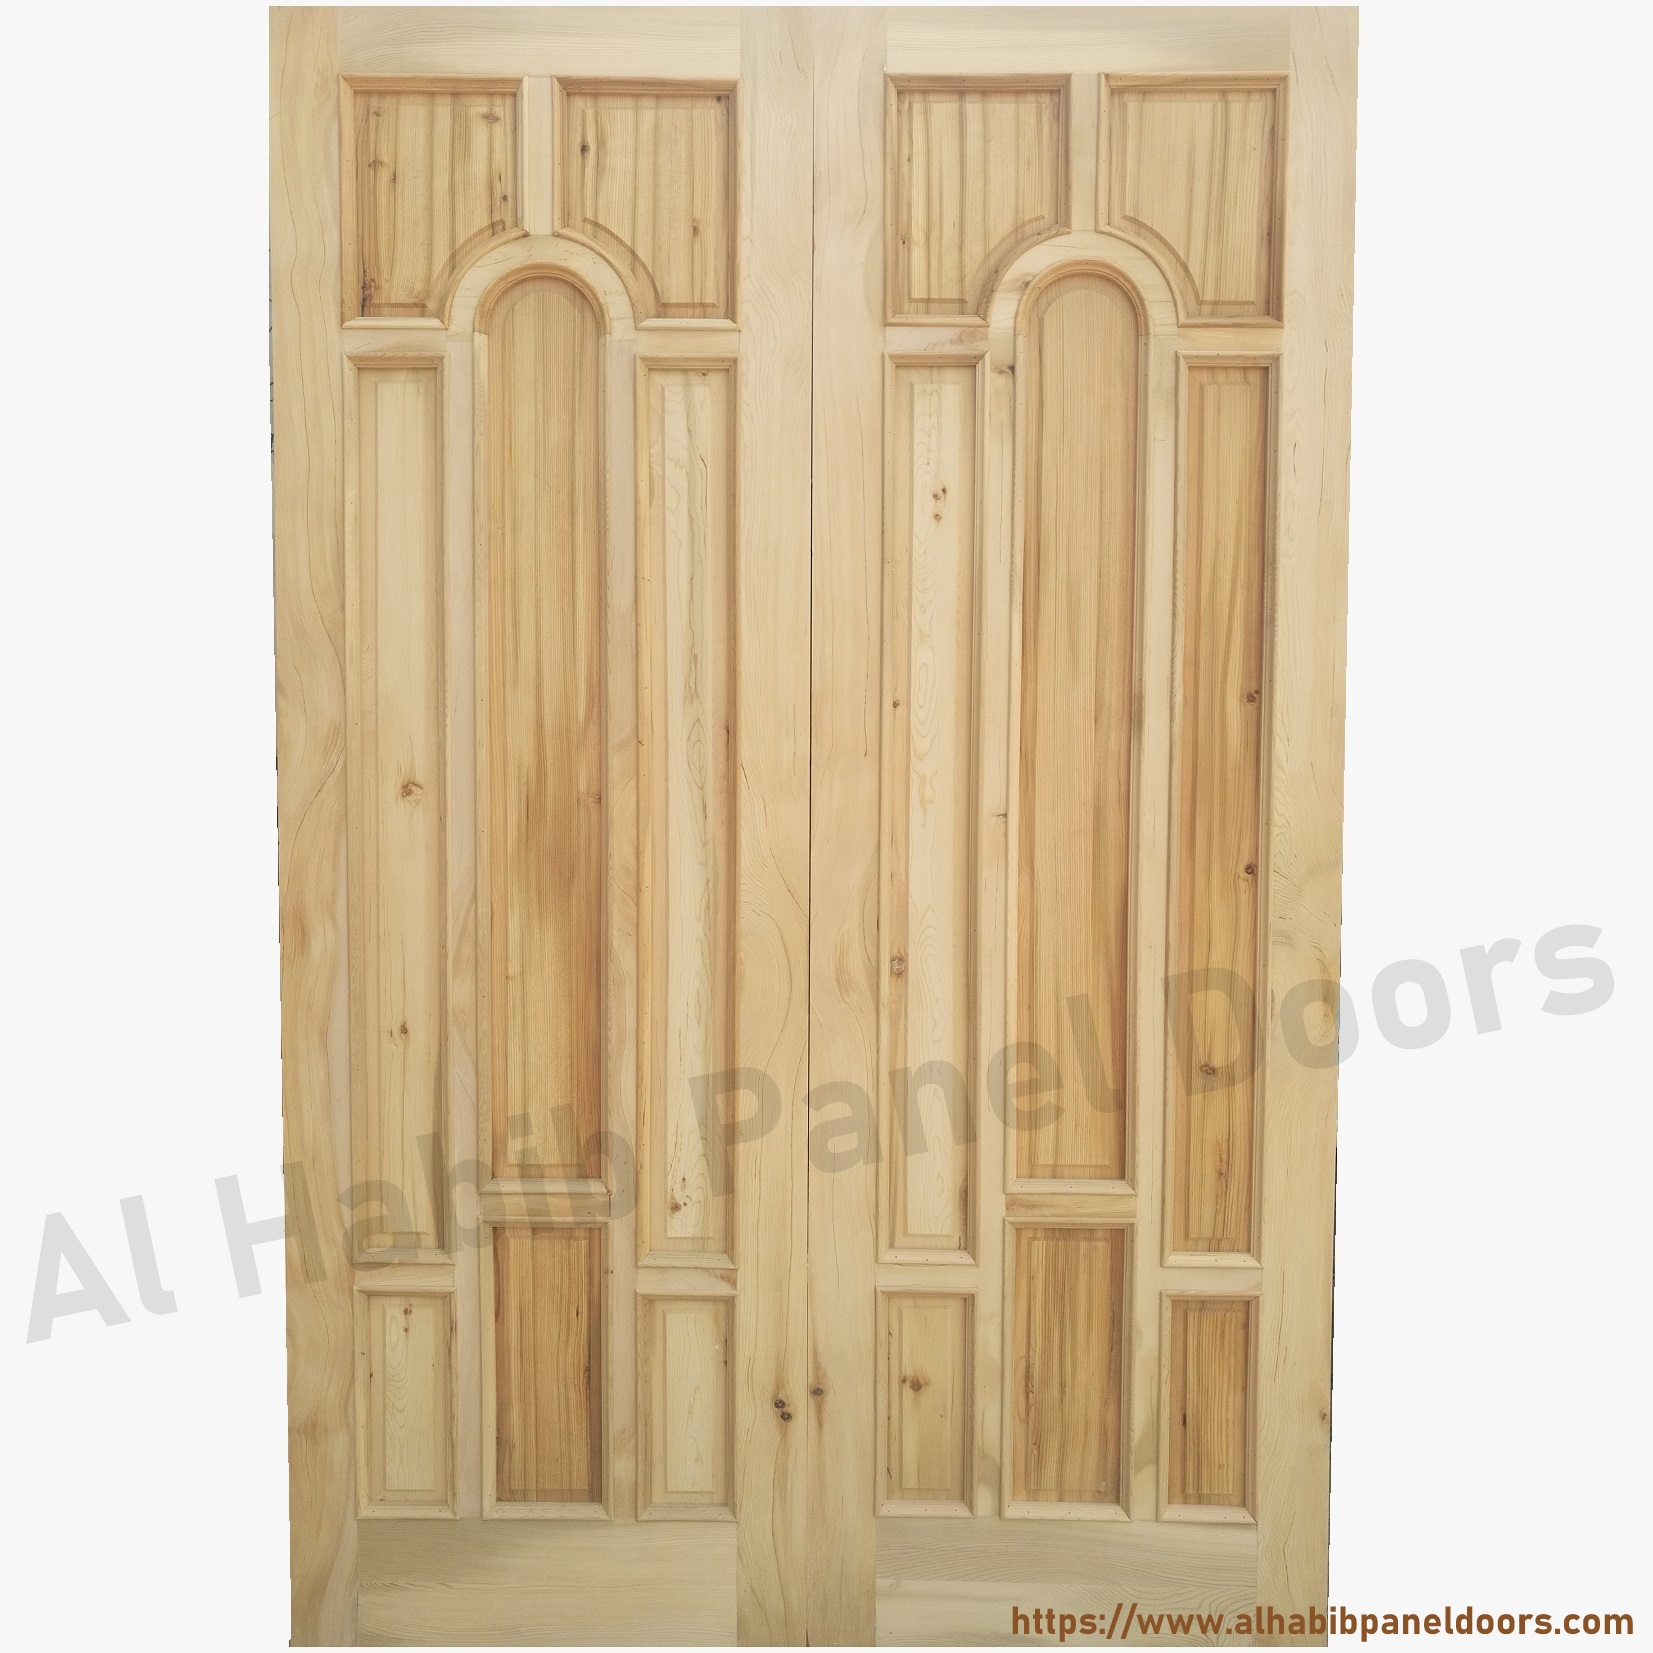 Main double door hpd329 main doors al habib panel doors for New main door